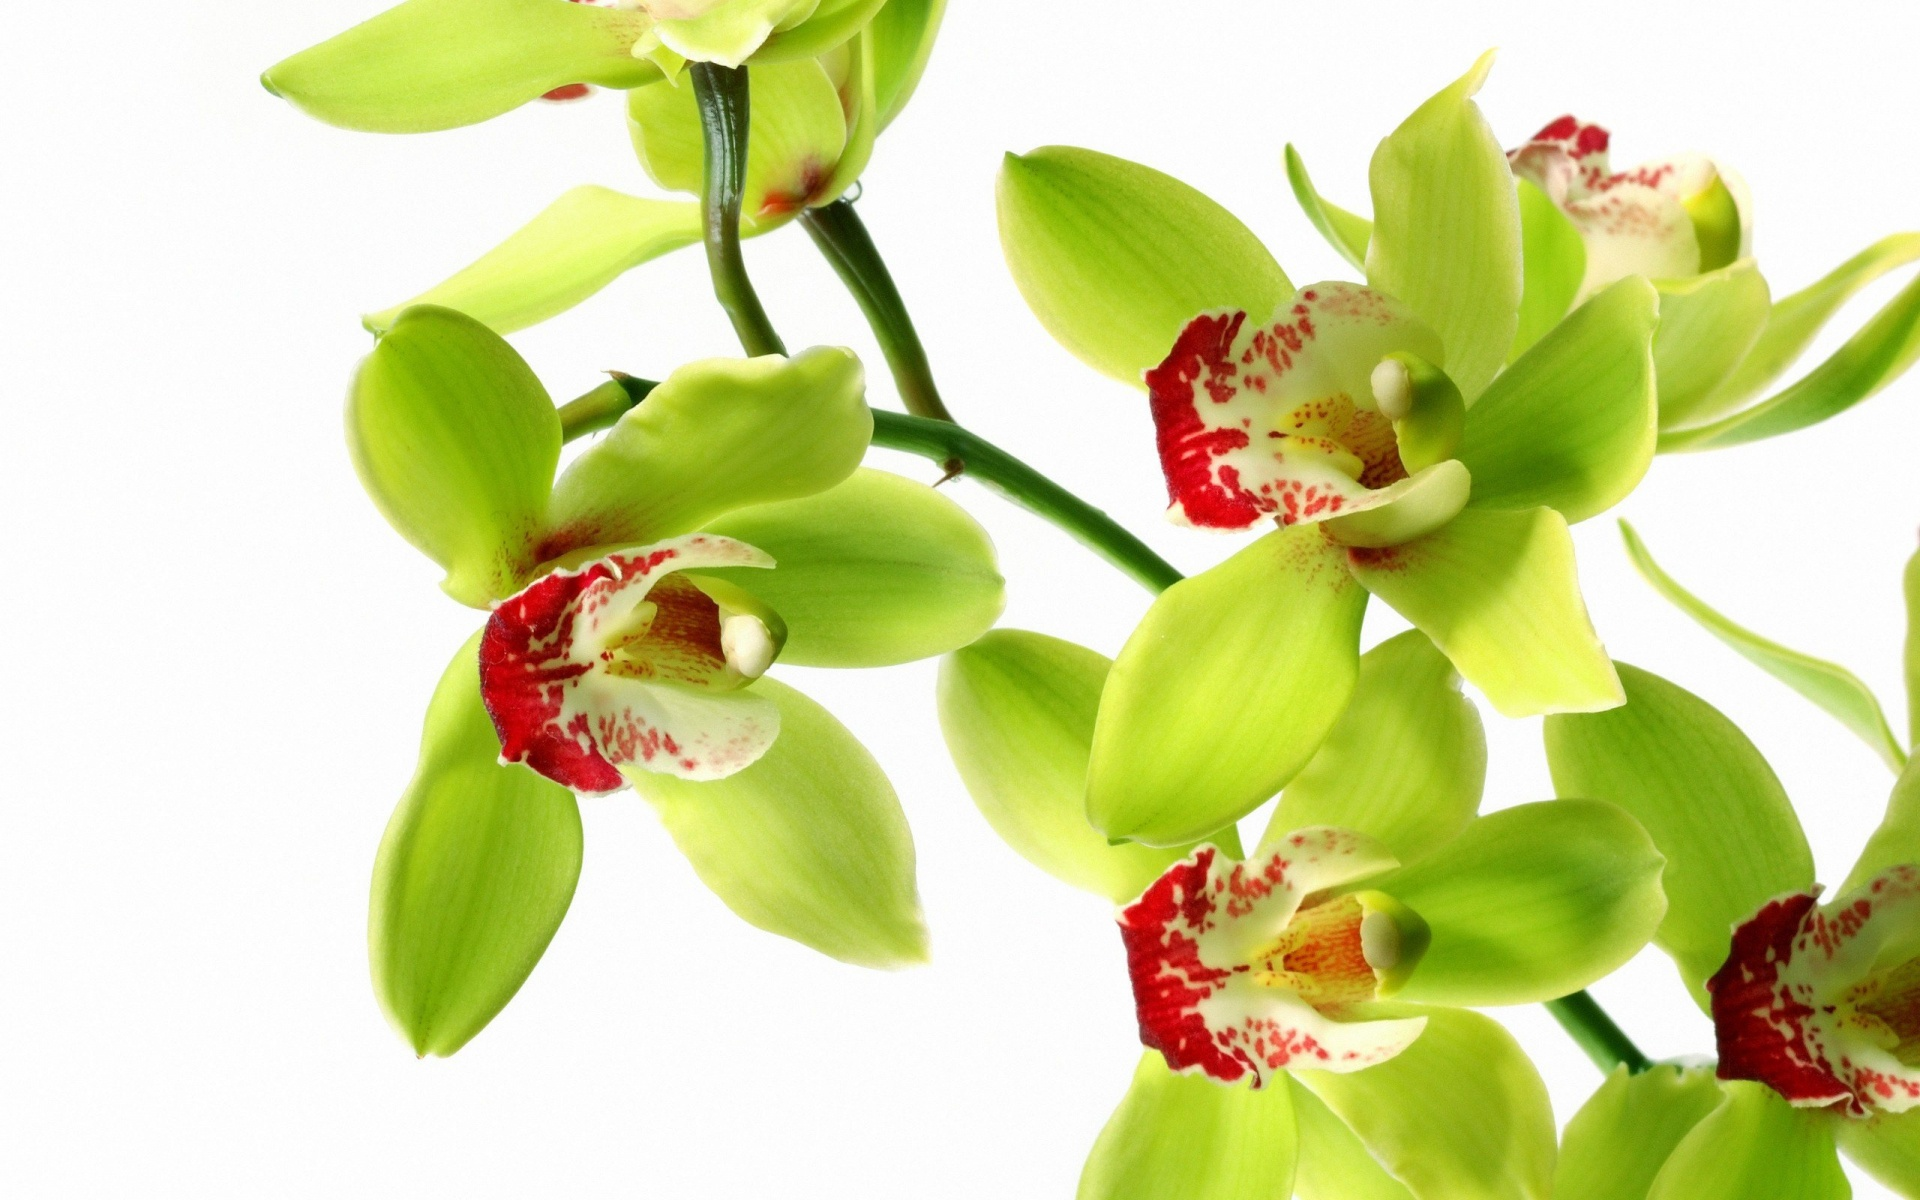 orchid wallpapers backgrounds images - photo #30